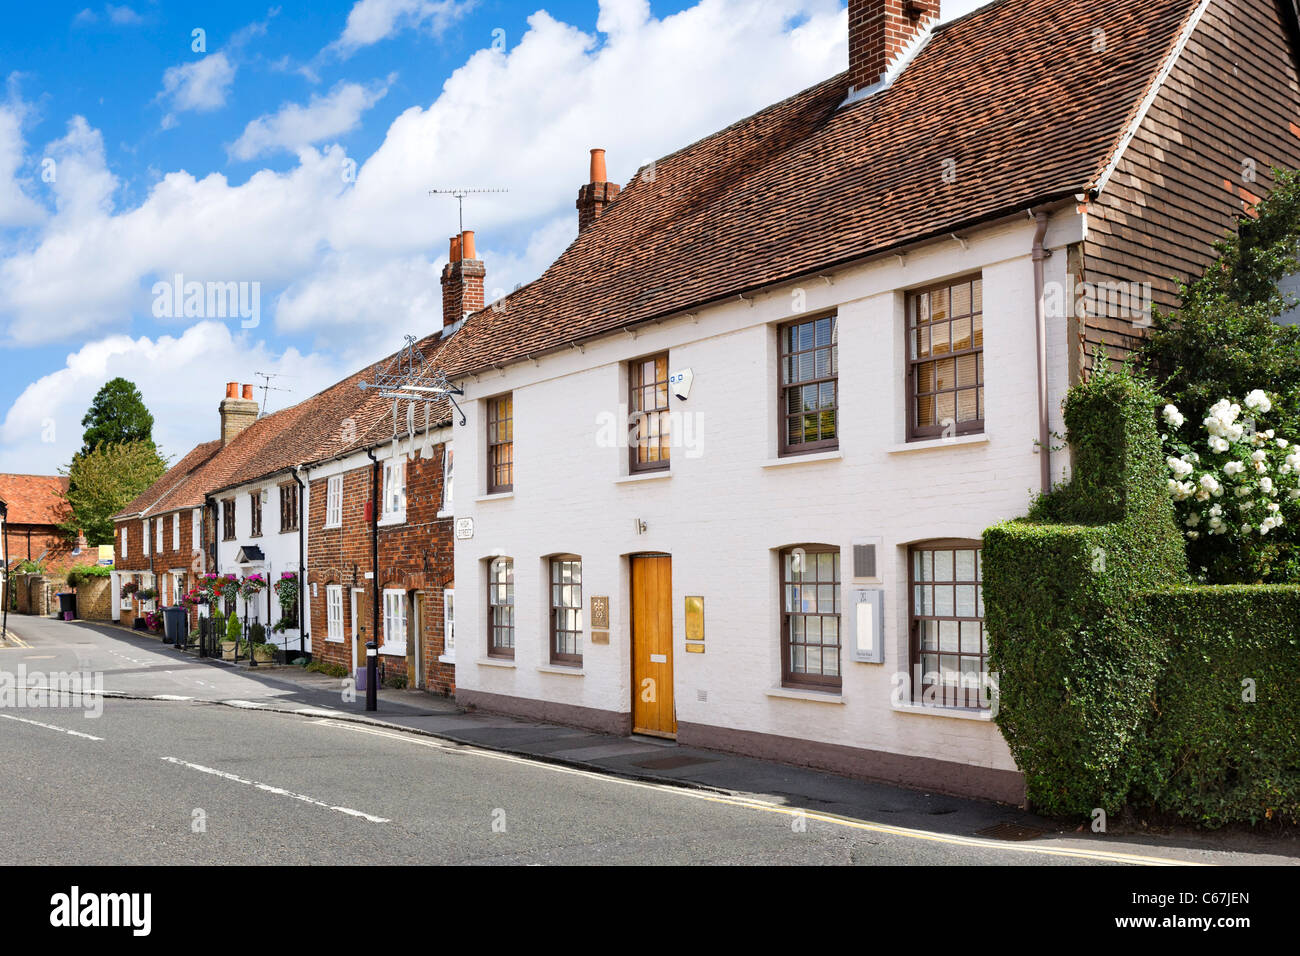 Heston Blumenthal's Fat Duck Restaurant on the High Street in Bray, Berkshire, England, UK Stock Photo